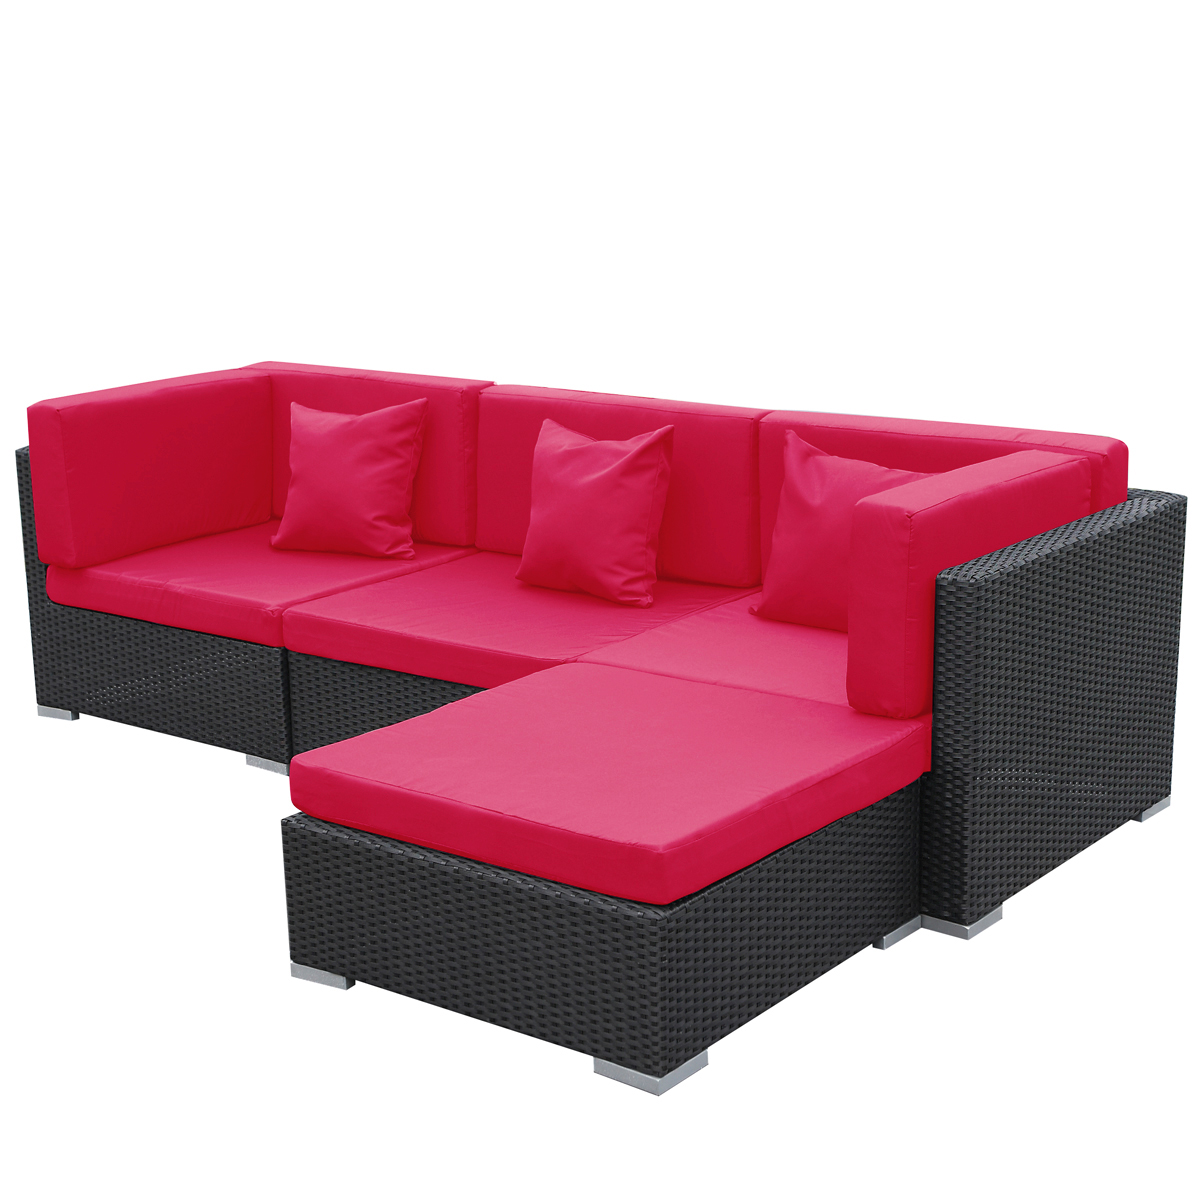 gartenm bel gartenlounge polyrattan sofa bergen rot schwarz ebay. Black Bedroom Furniture Sets. Home Design Ideas